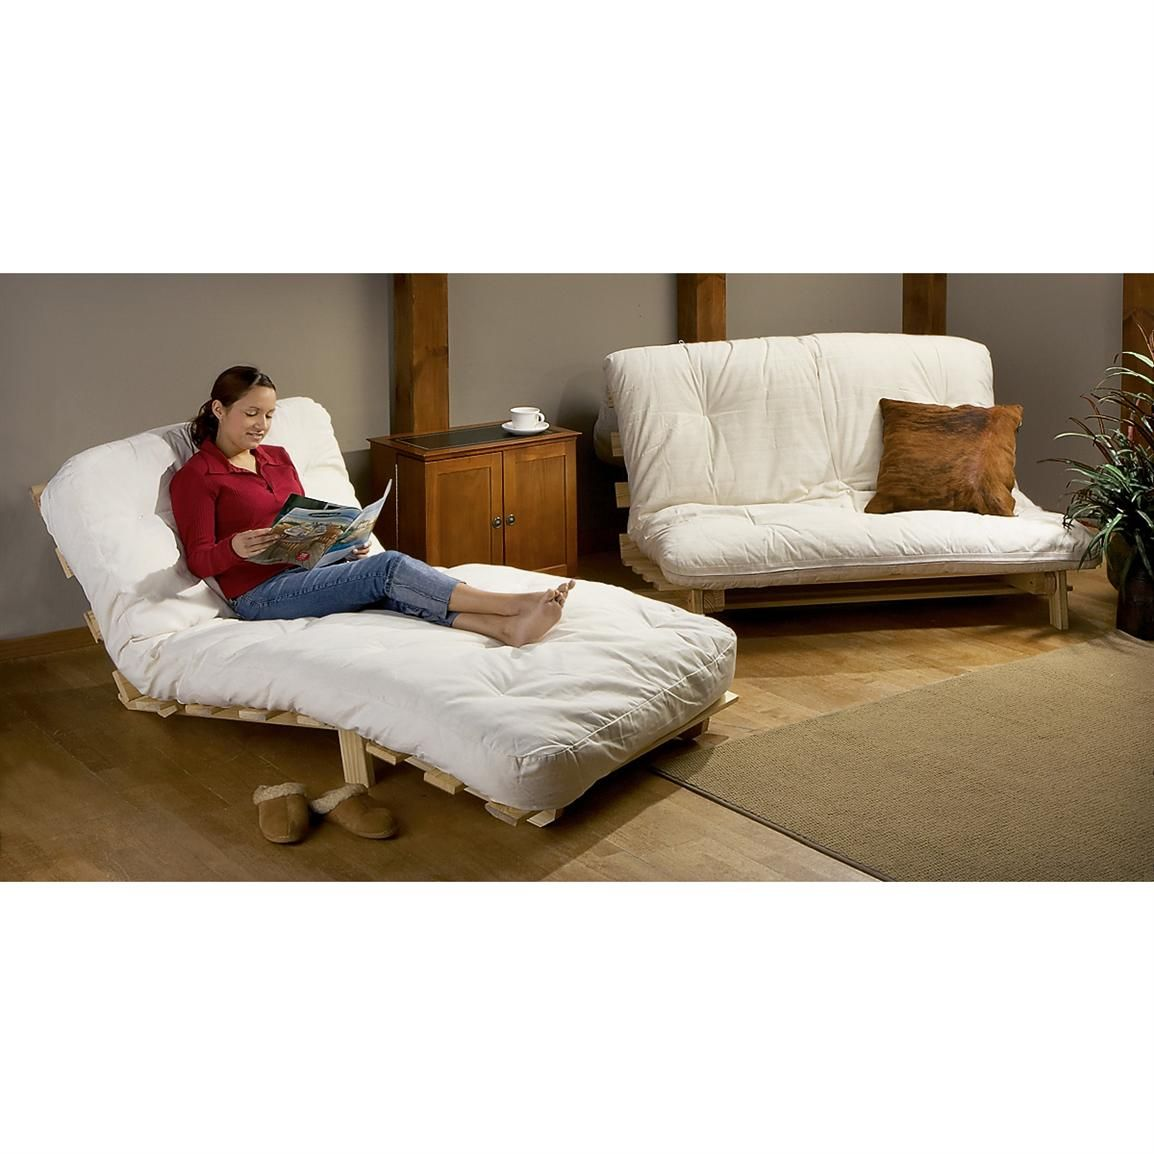 folding twin mattress size image basement out jeffsbakery futon diy find wood of